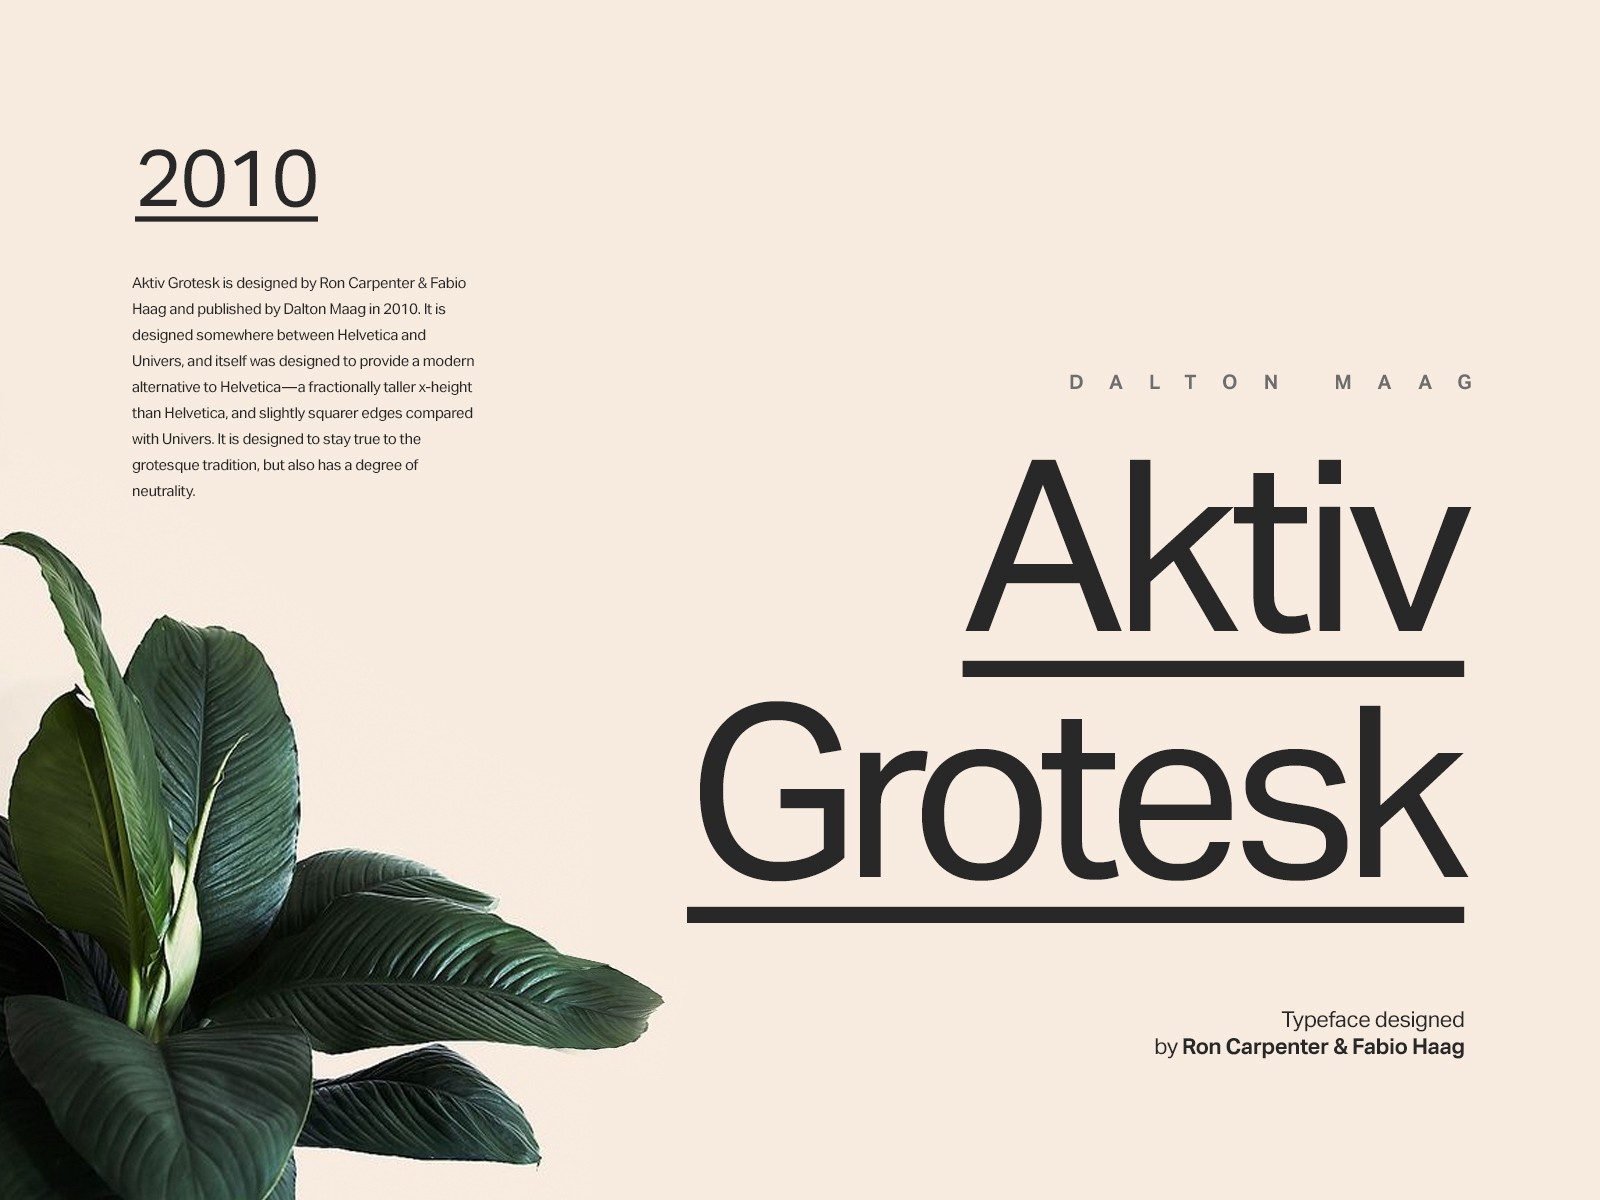 Aktiv Grotesk Is Designed By Ron Carpenter Fabio Haag And Published Dalton Maag In 2010 It Somewhere Between Helvetica Univers